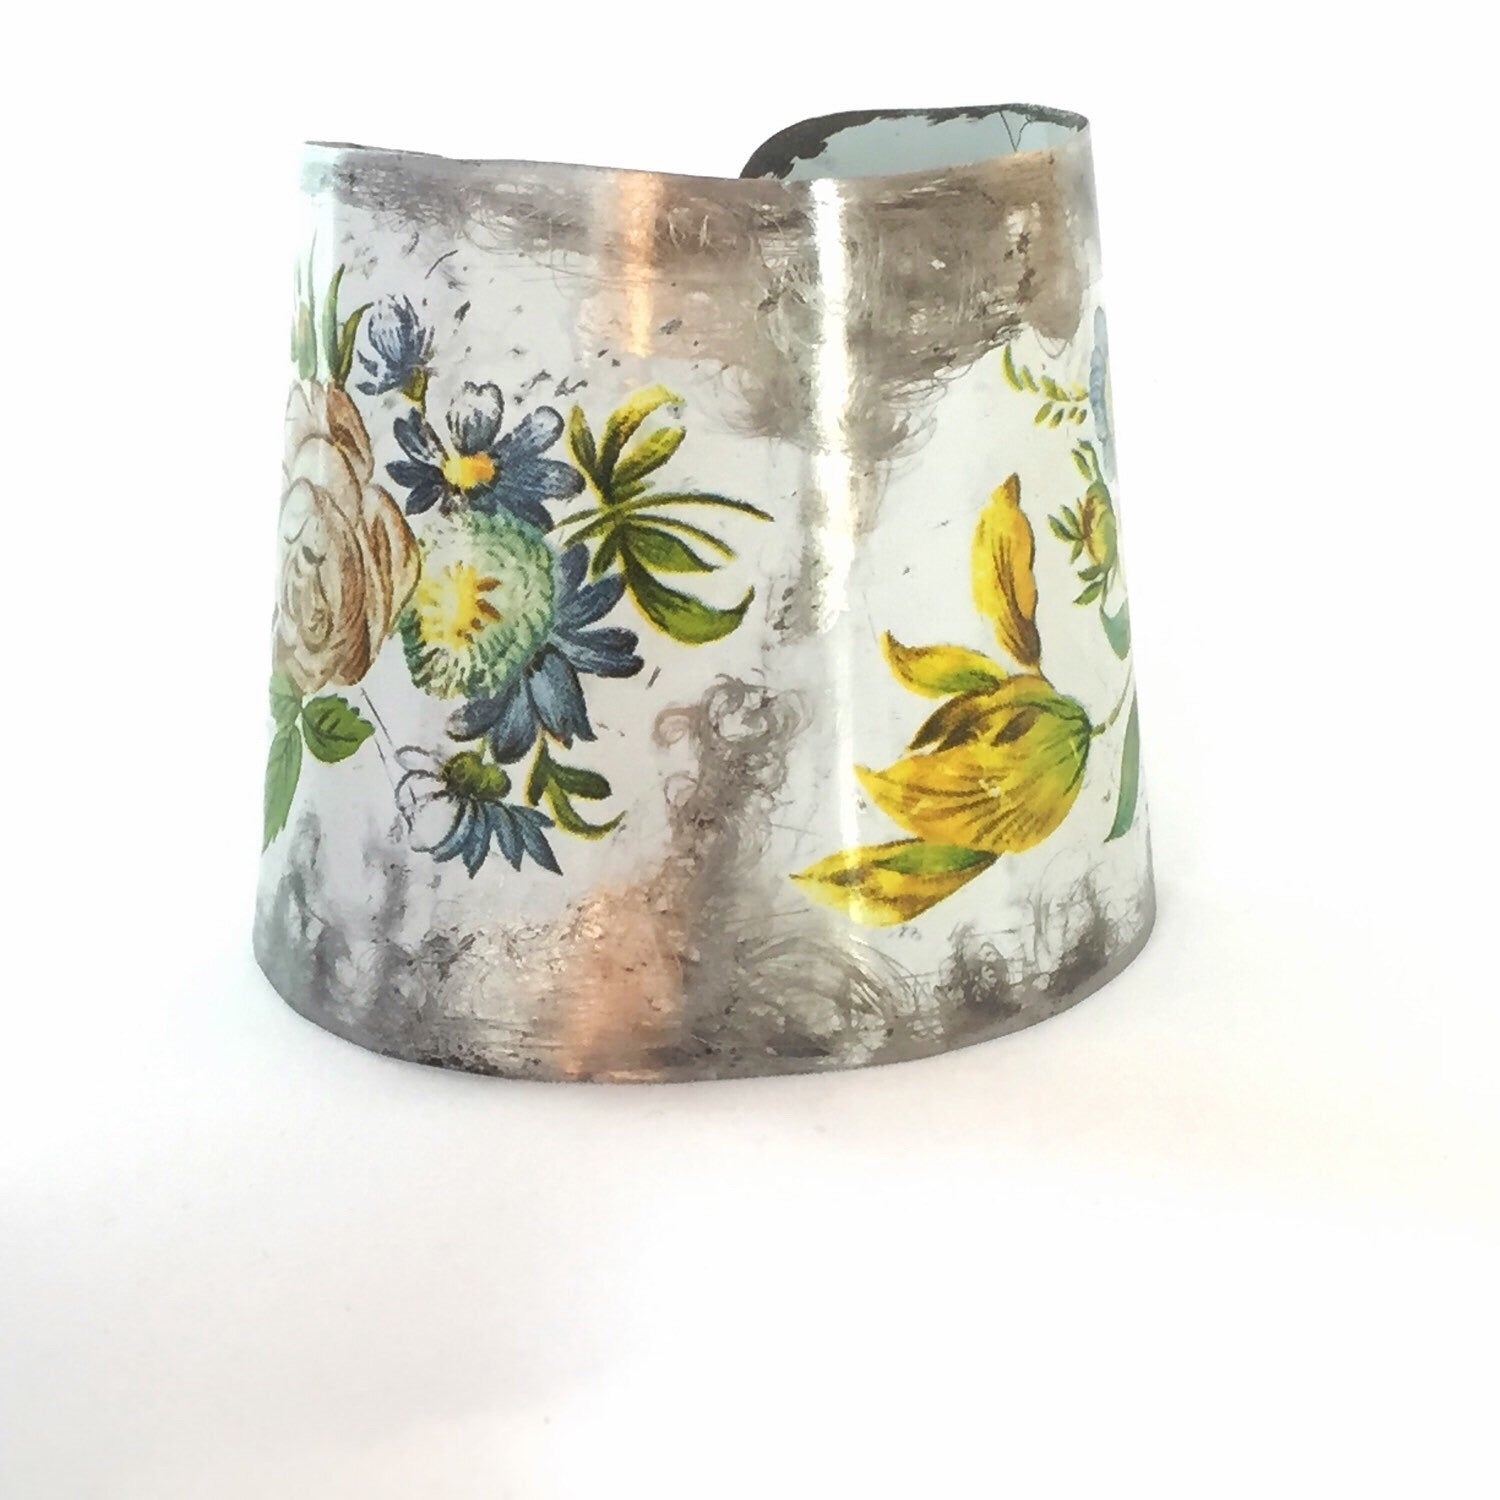 Recycled Vintage Tin Jewelry - Distressed Floral cuff Bracelet Image 3